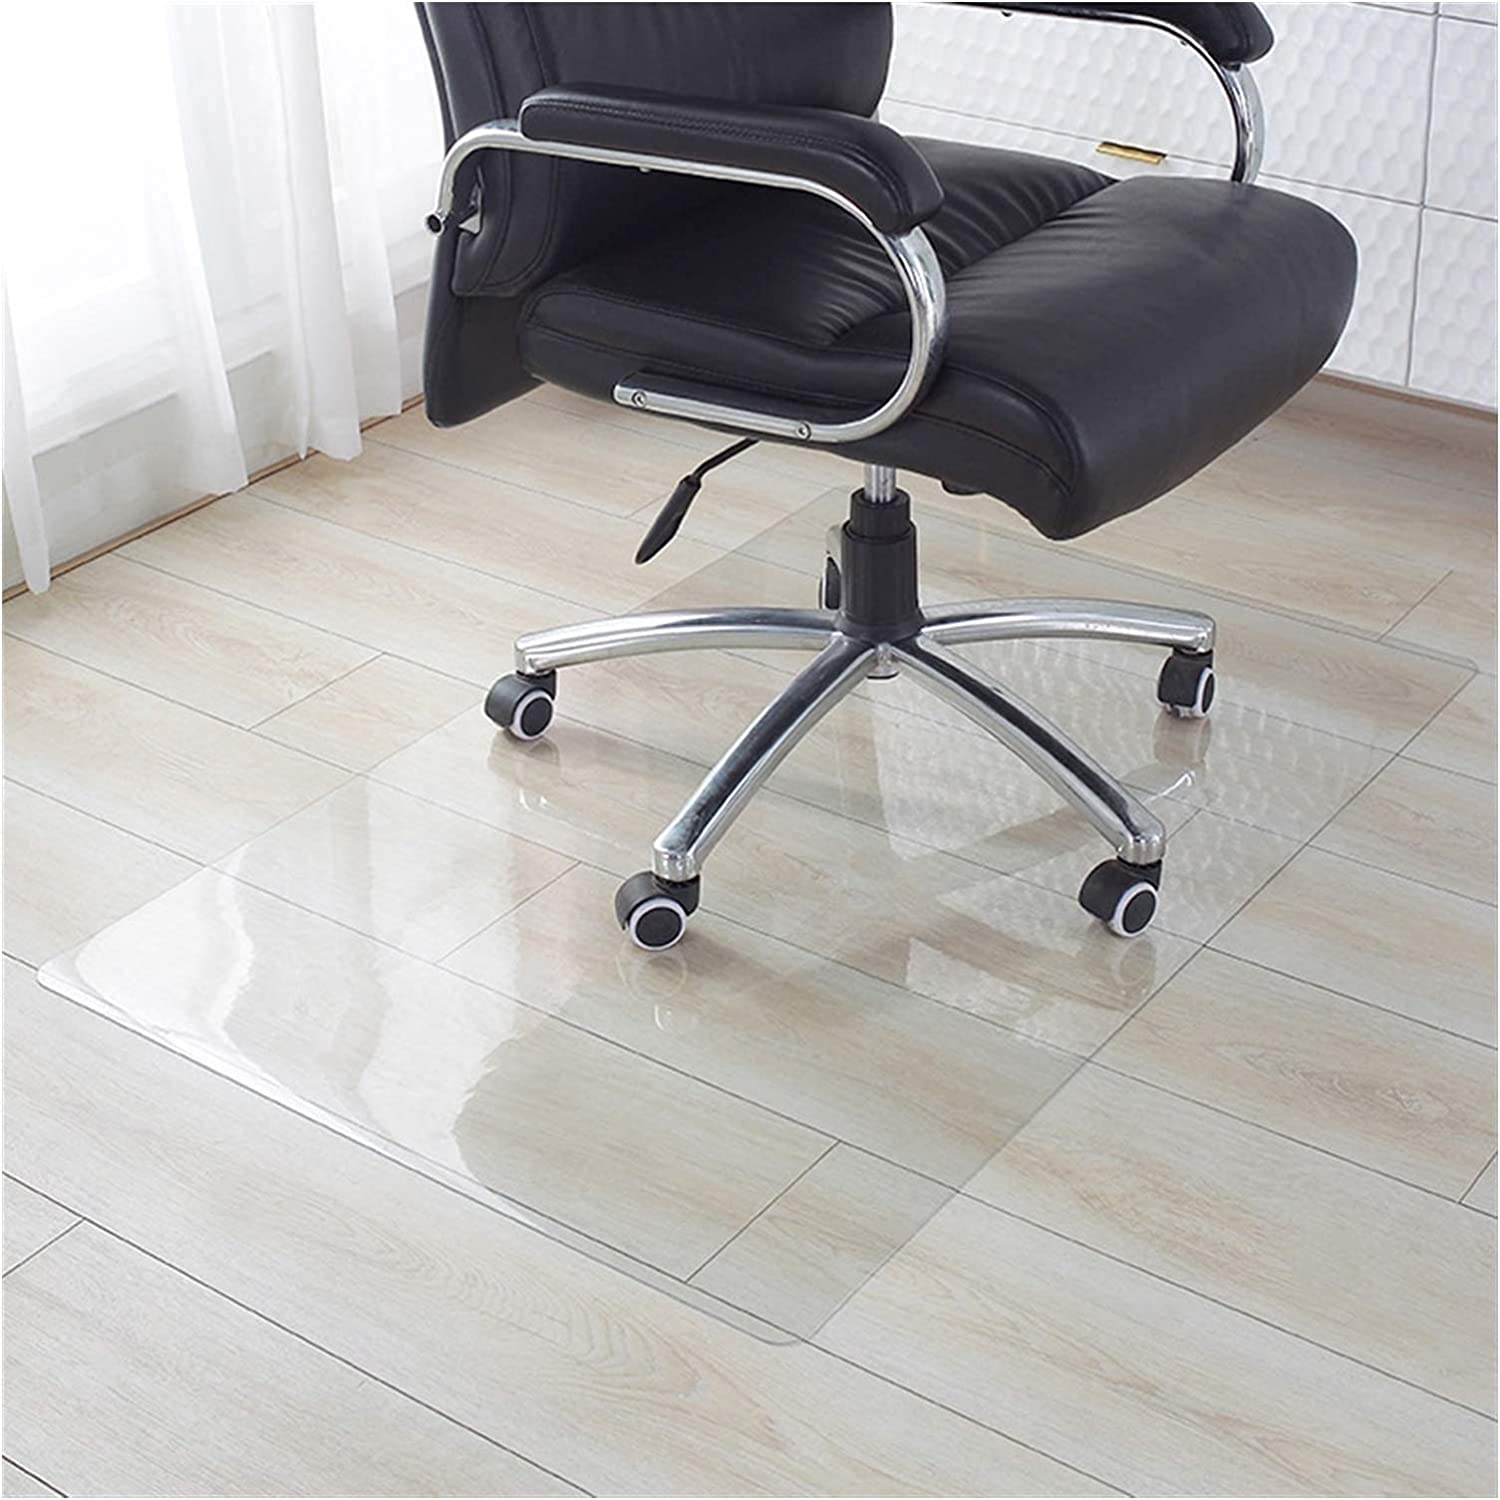 ZWYSL Chair Mat Office for Flat Floor Wit Hardwood Dallas ! Super beauty product restock quality top! Mall